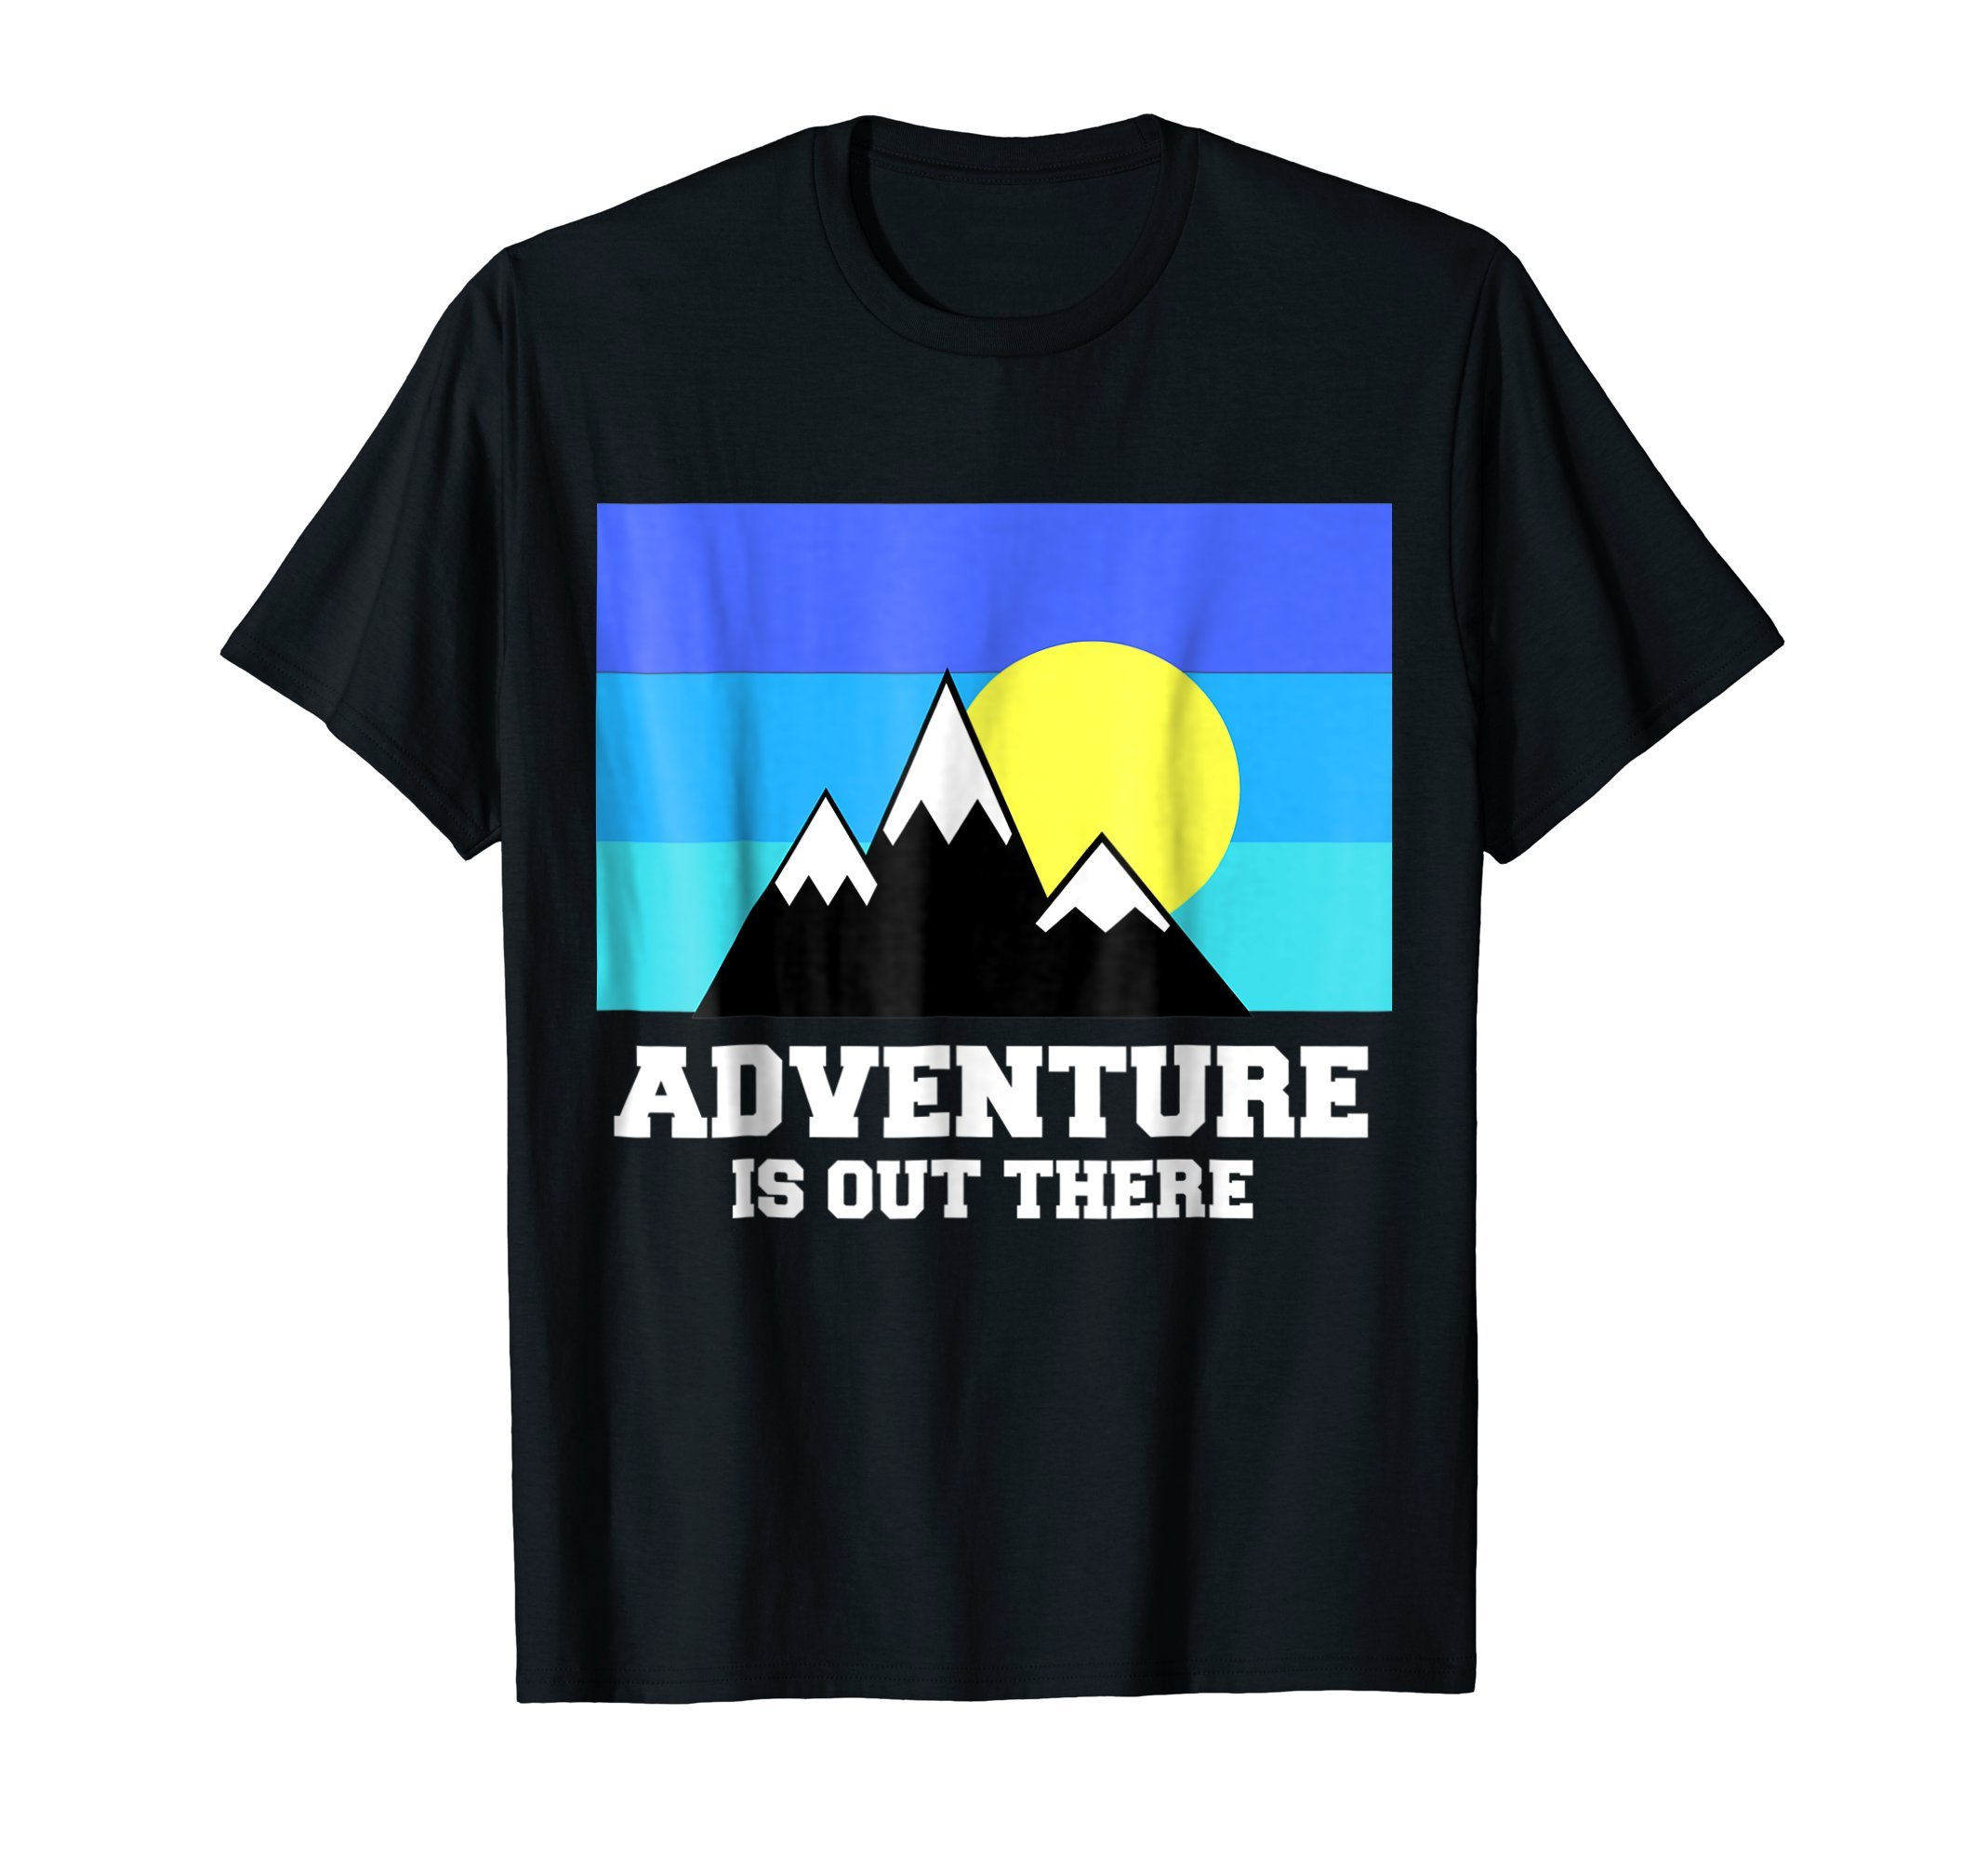 Adventure is out there t shirt | Travel Backpacker T shirt by Journey Adventurer T shirt (Image #1)